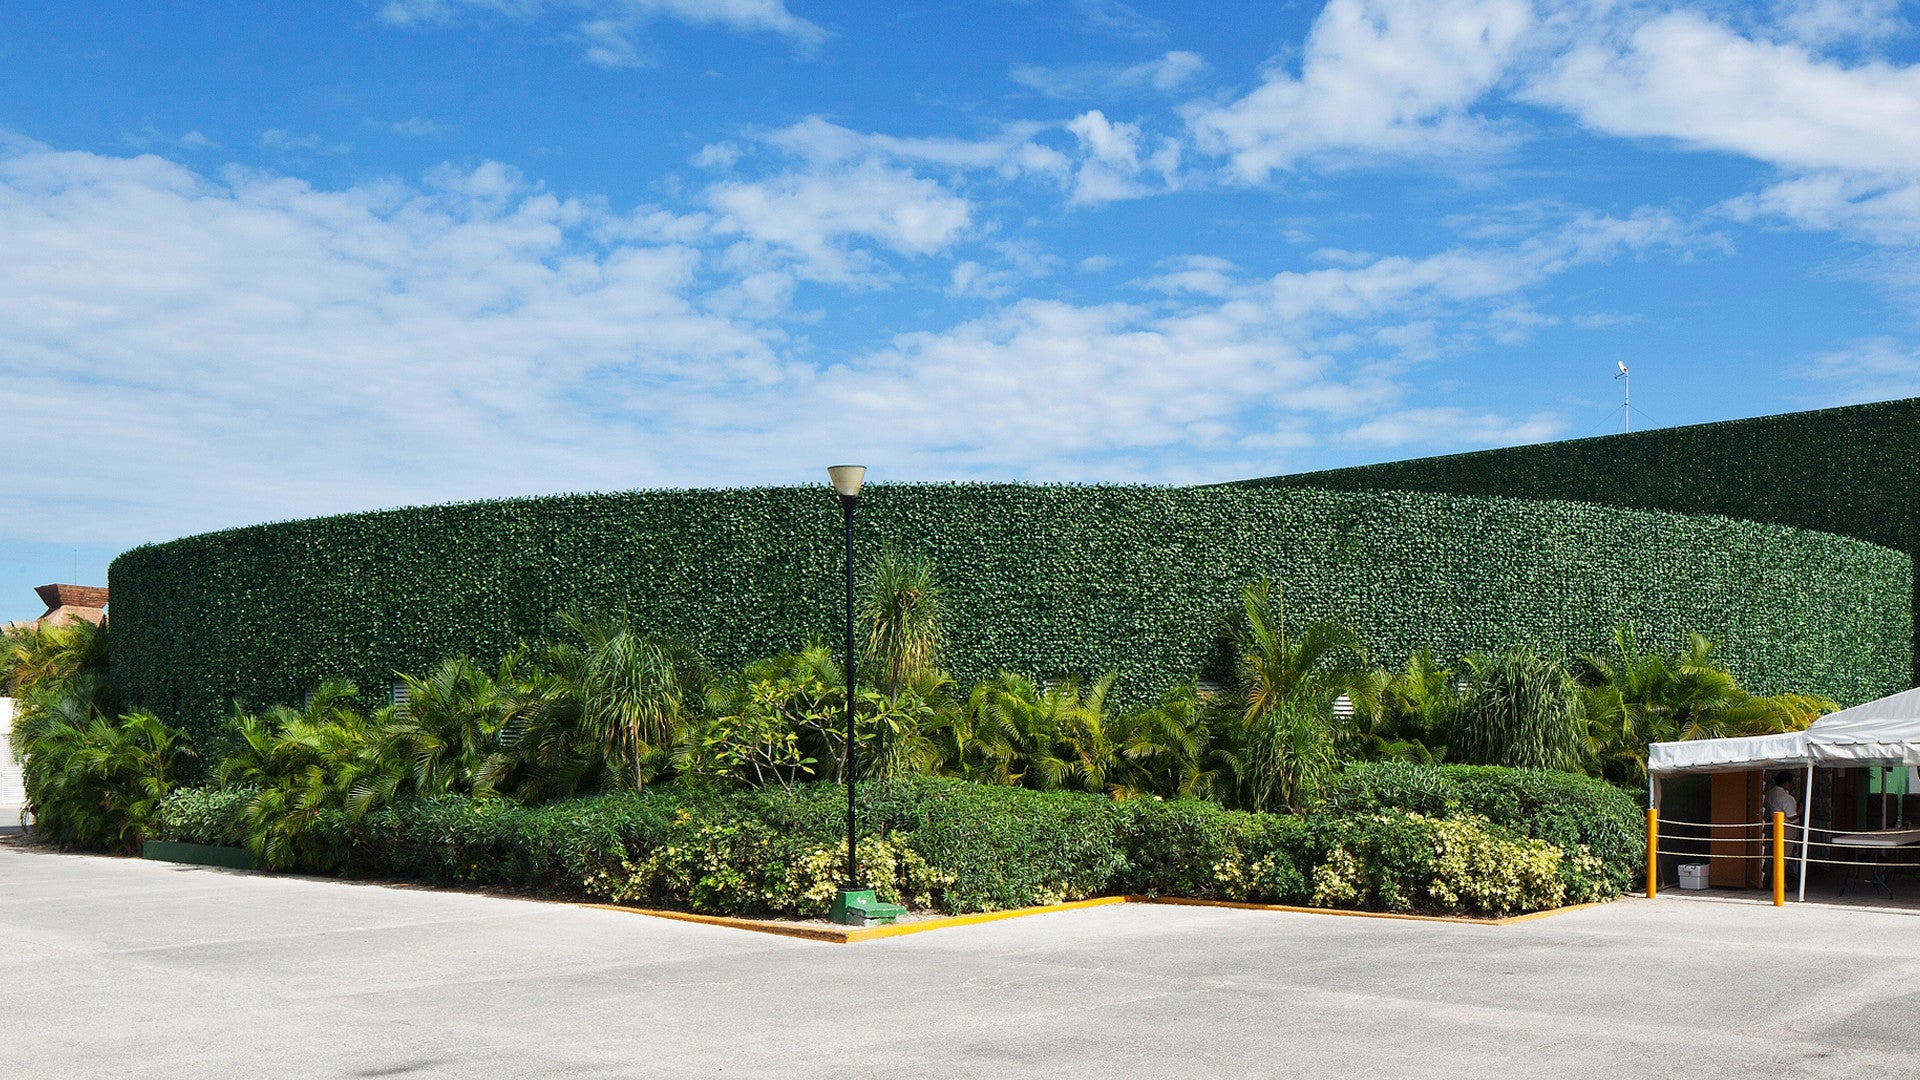 ARTIFICIAL HEDGES